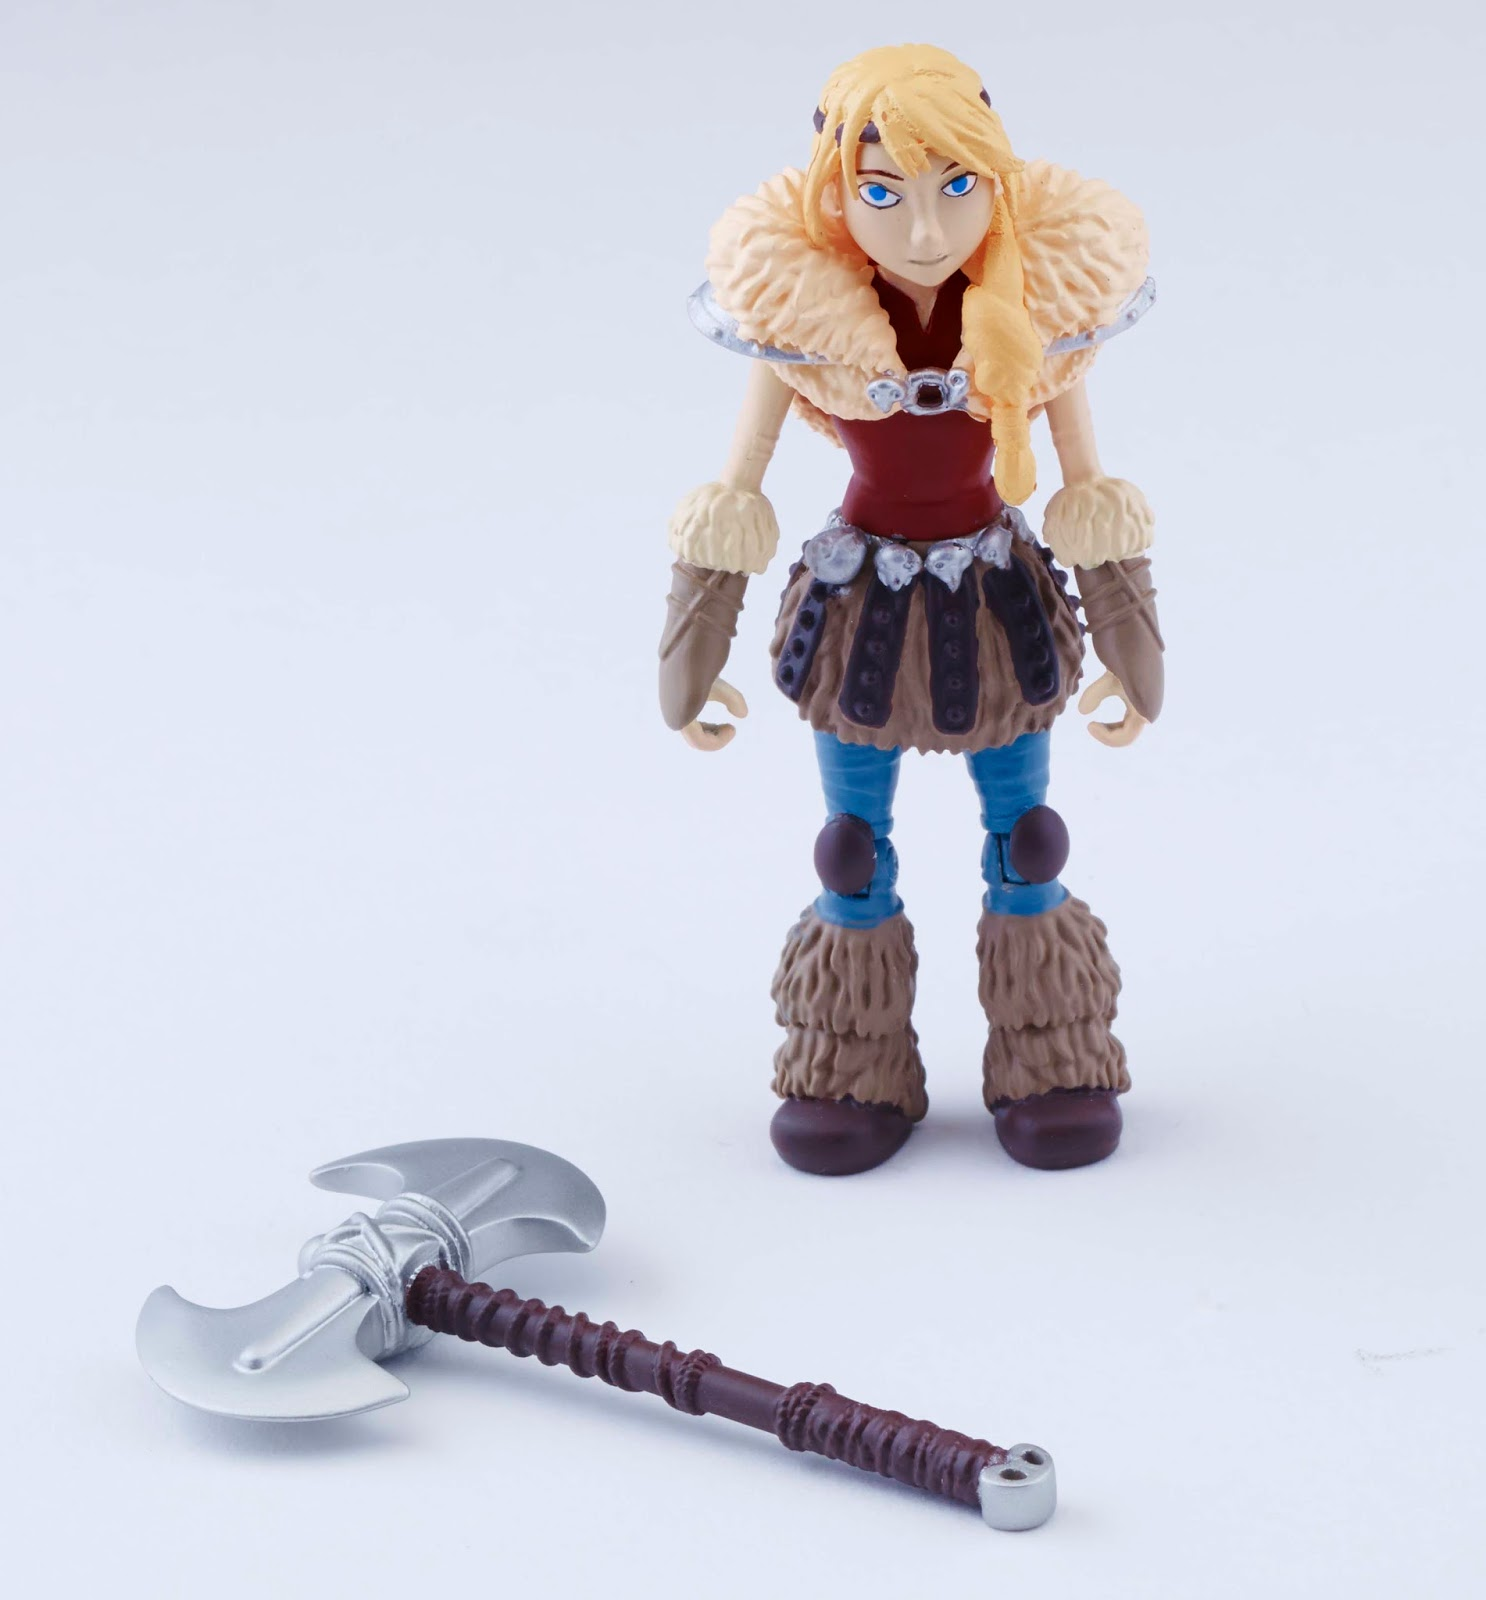 Update: More Dragon Toy Images Below!